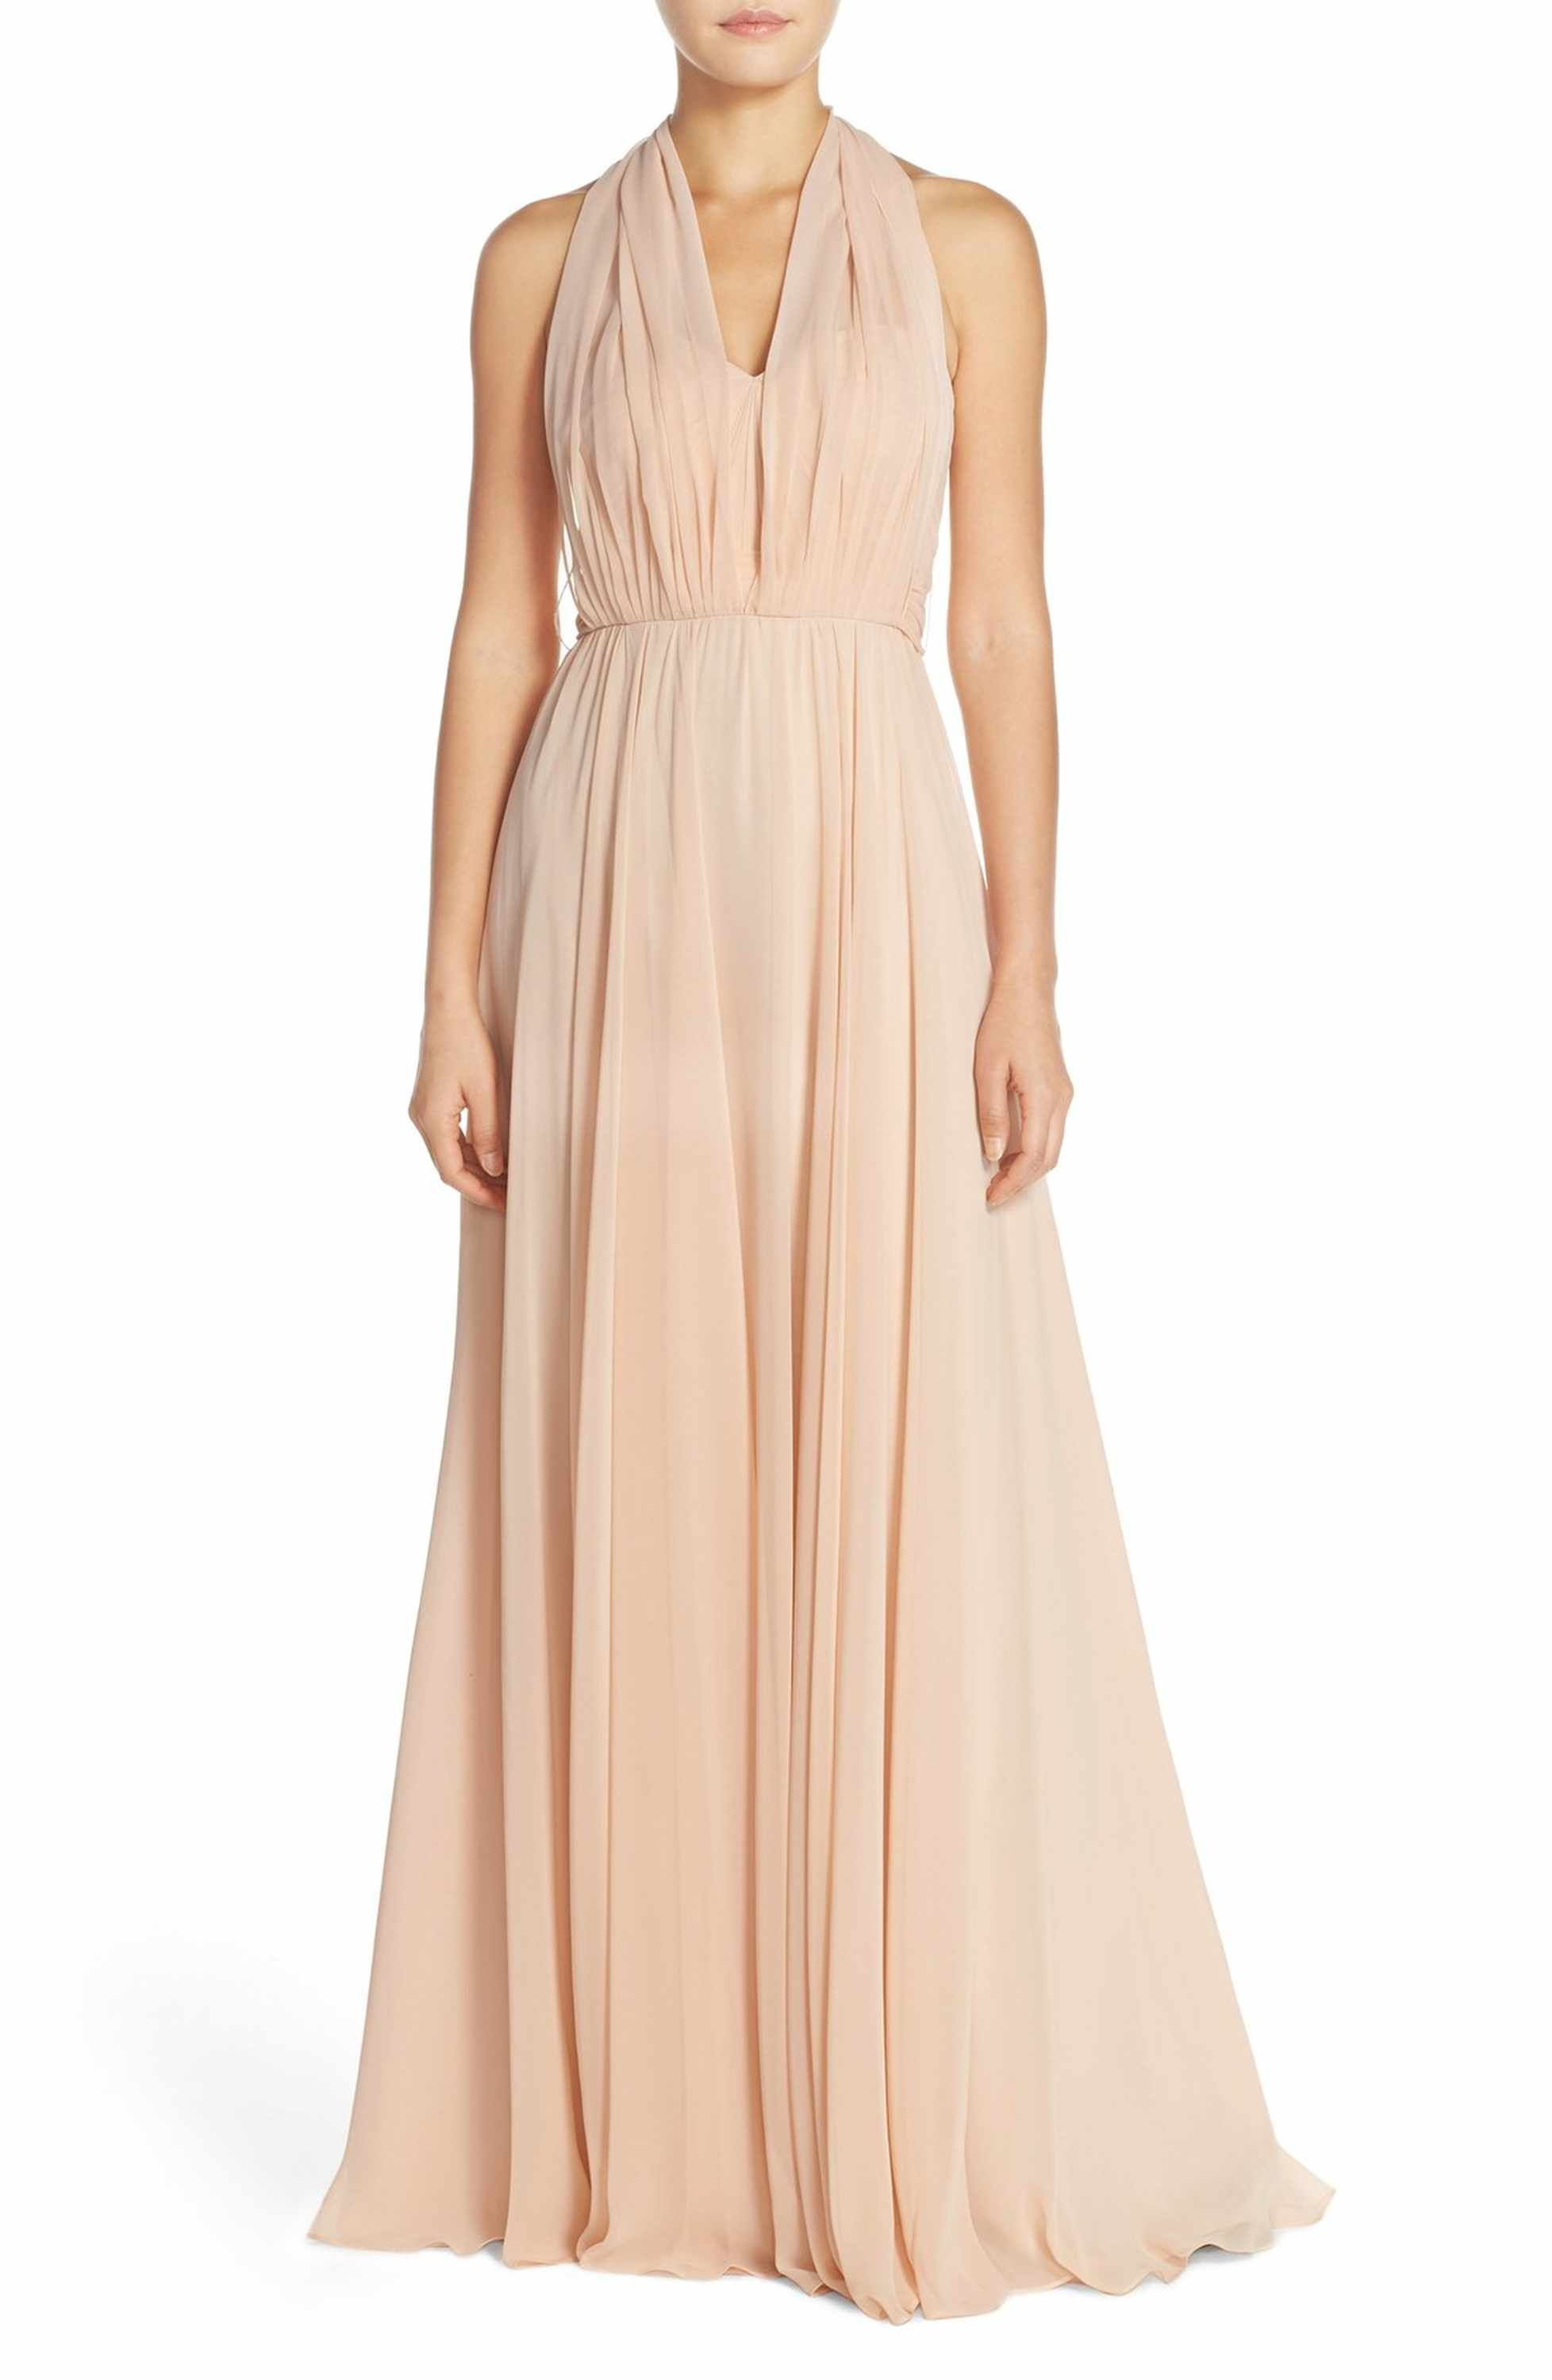 Gown dress for wedding party  Mira Convertible Strapless Chiffon Gown  Chiffon gown Gowns and